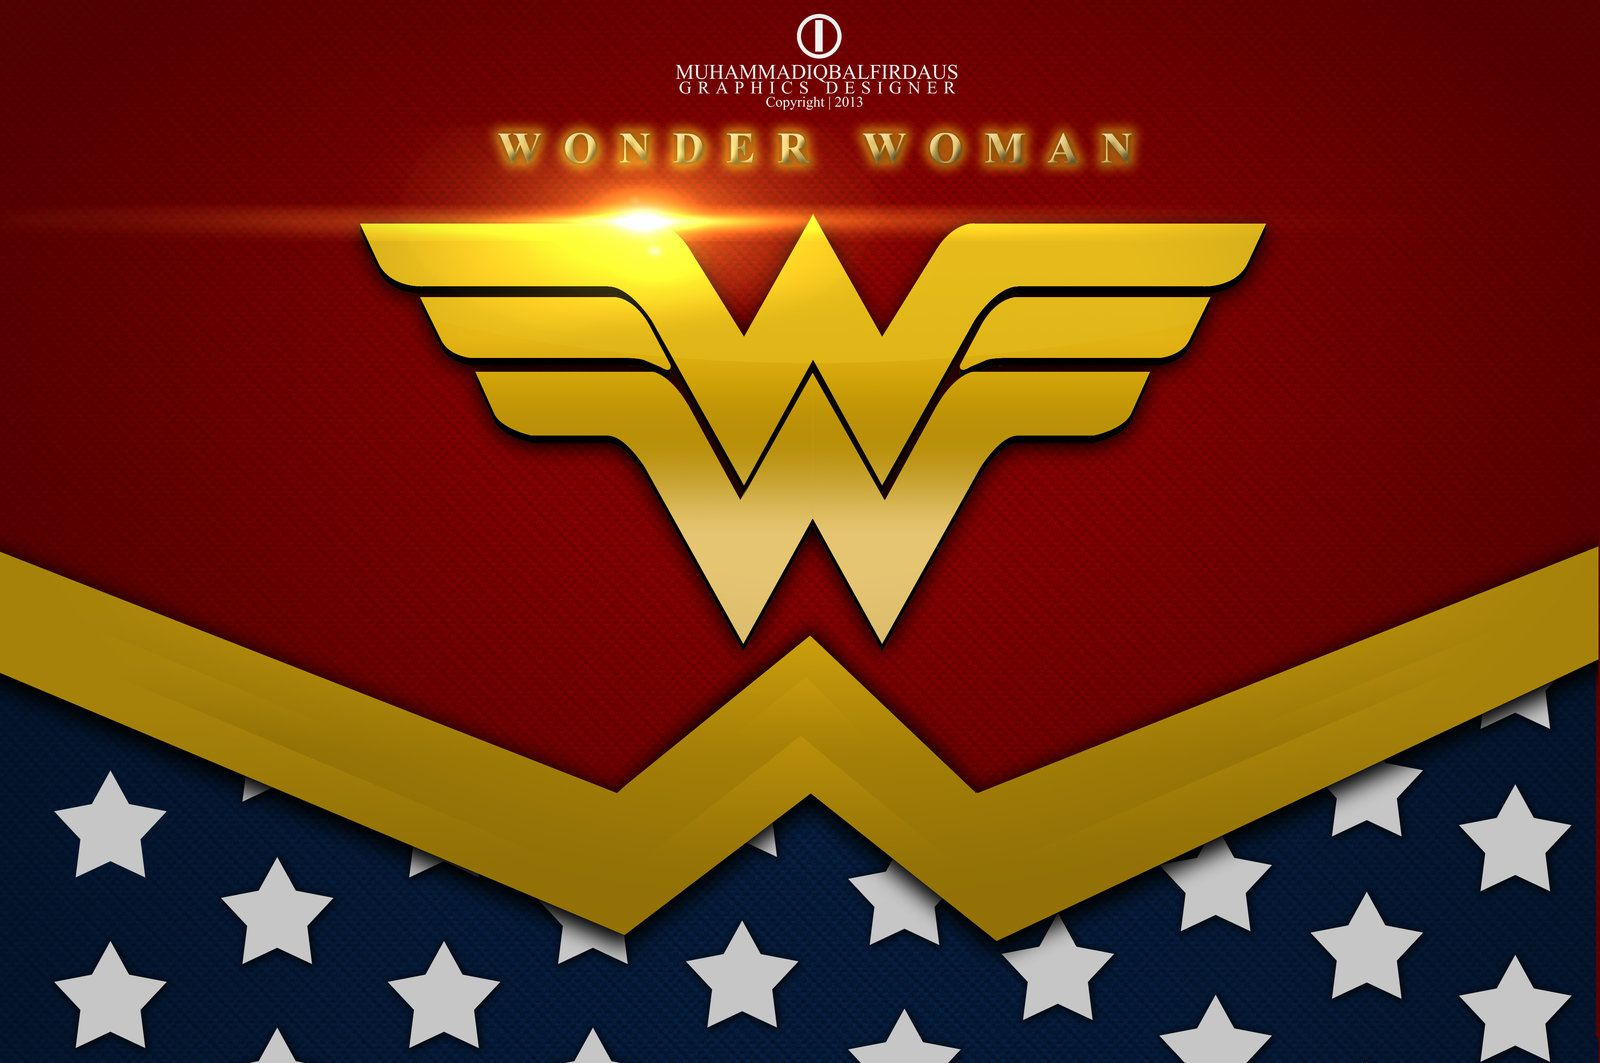 Pin wonder woman logo template for on pinterest wonder woman pin wonder woman logo template for on pinterest biocorpaavc Images